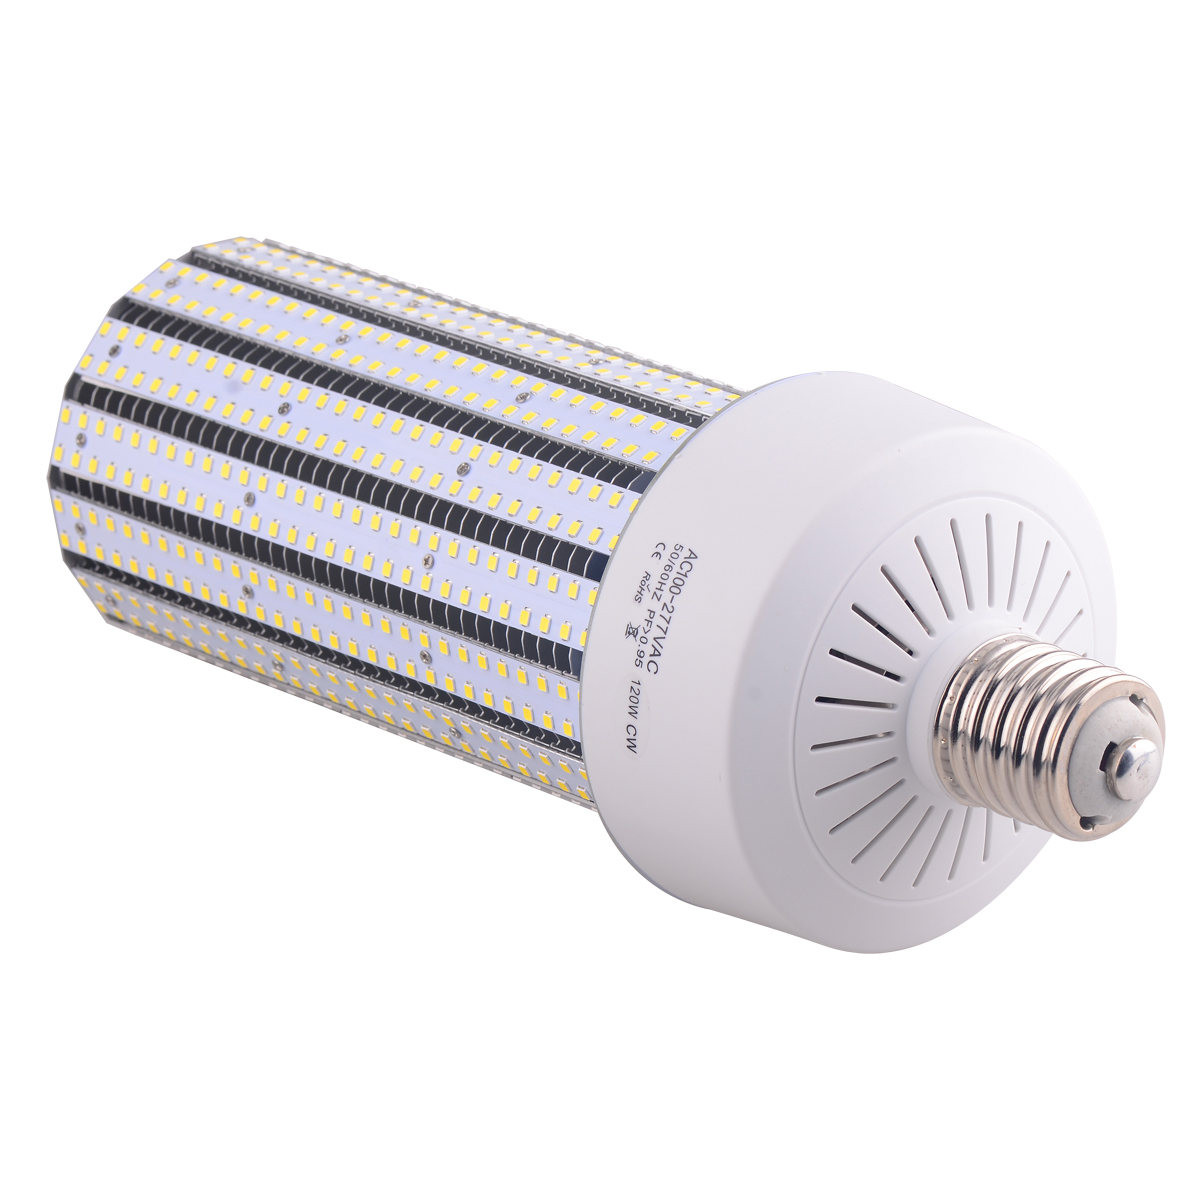 100 Watt Led Corn Cob Light (5)